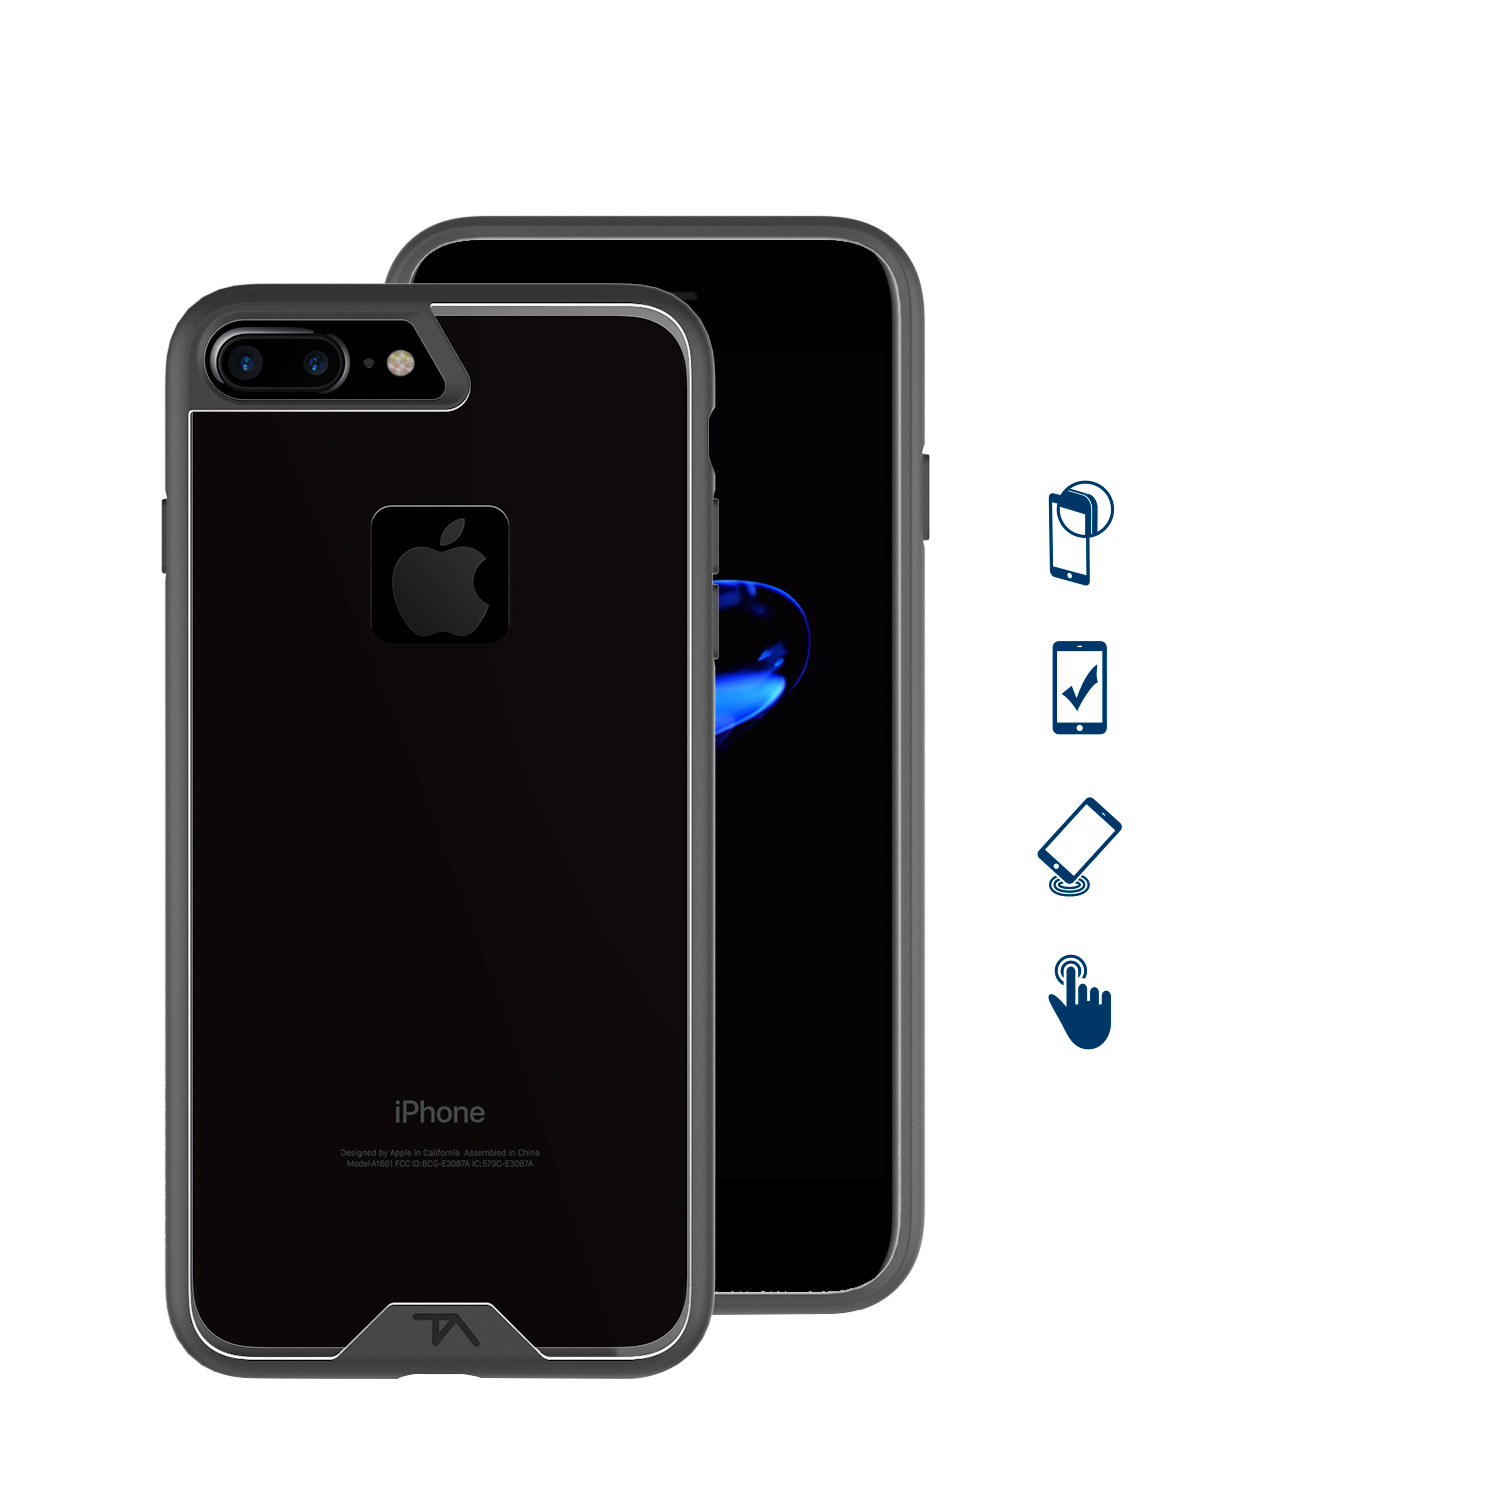 timeless design 716f4 a511c Details about Tech Armor FlexProtect Case for iPhone 7 Plus / 8 Plus (5.5